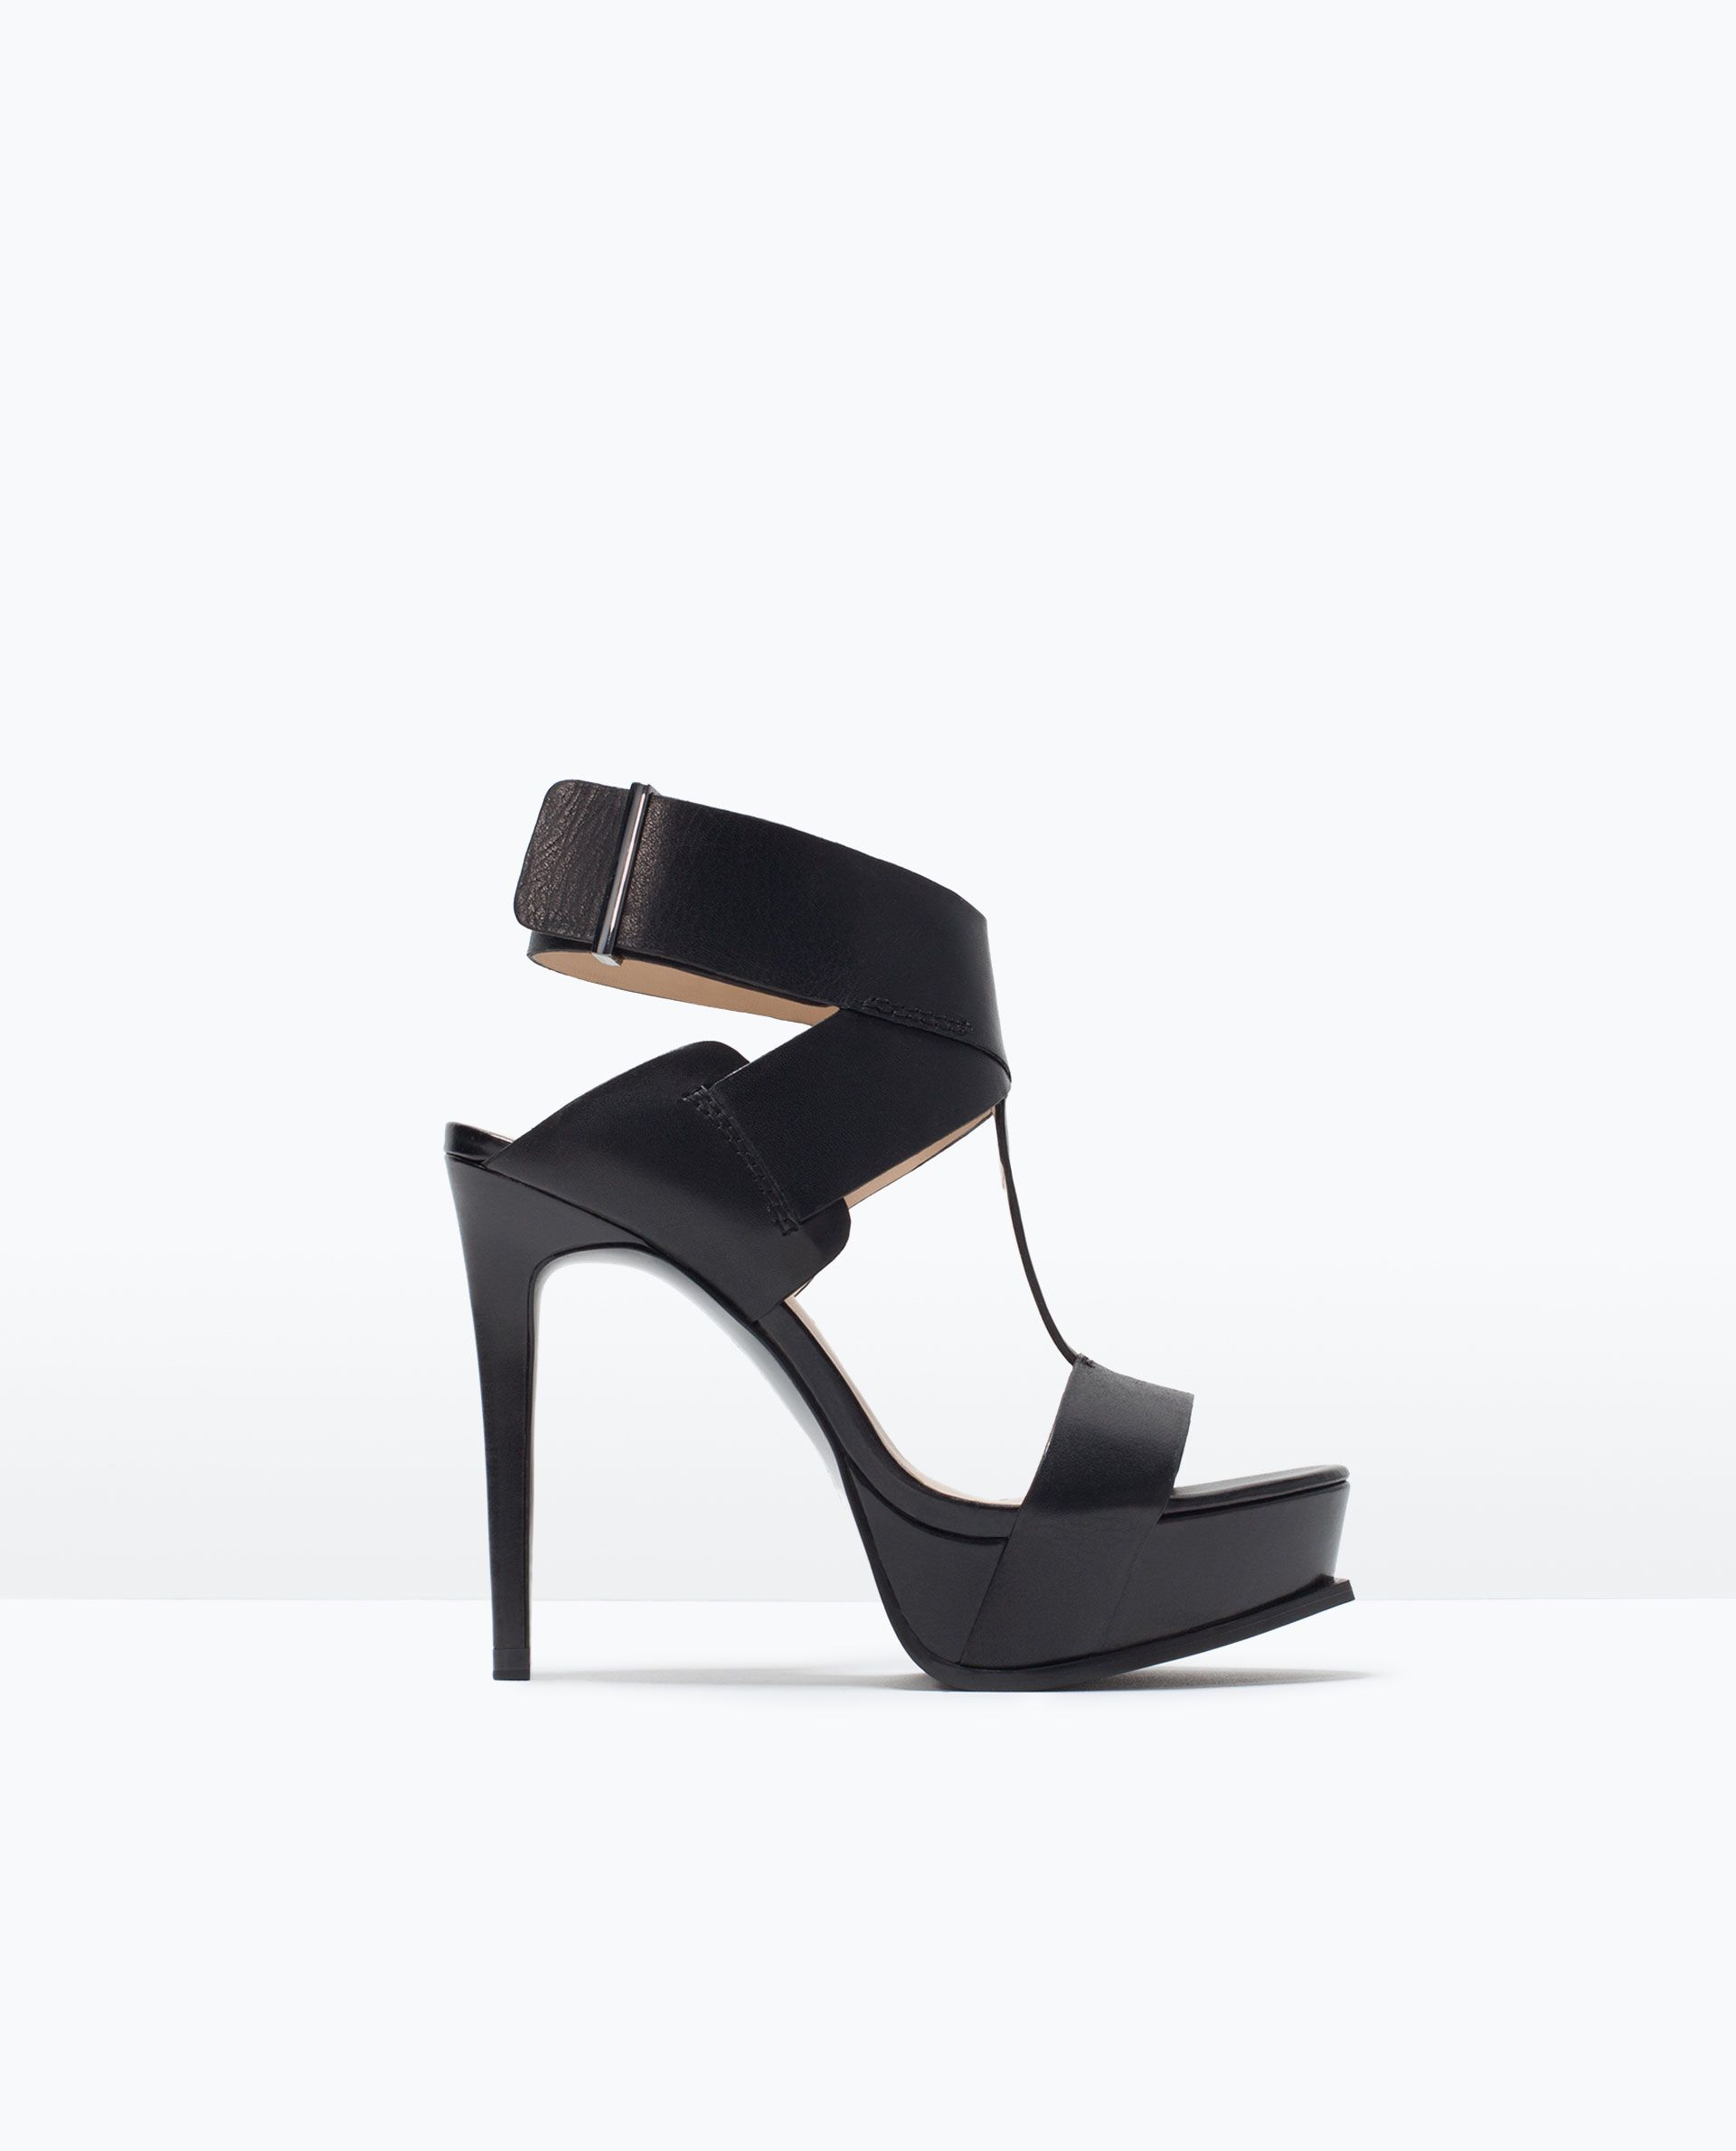 f20a89d1 Shop Women's Zara Black size 38 EU Sandals at a discounted price at  Poshmark.